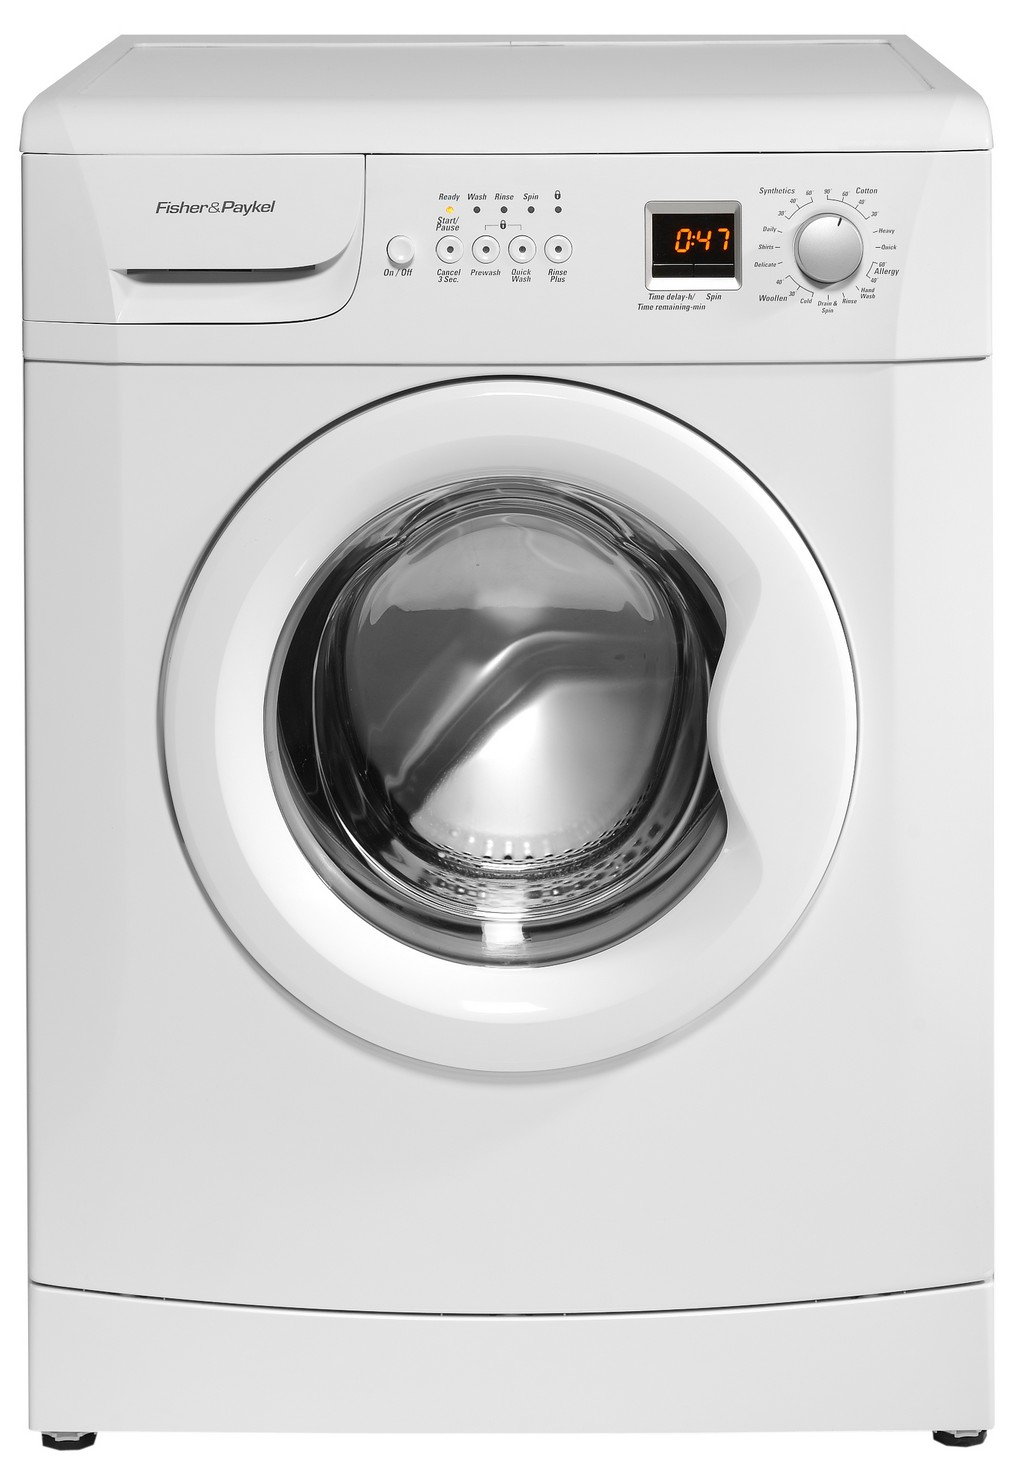 fully automatic washing machine, hotpoint washing machine, front load washer and dryer